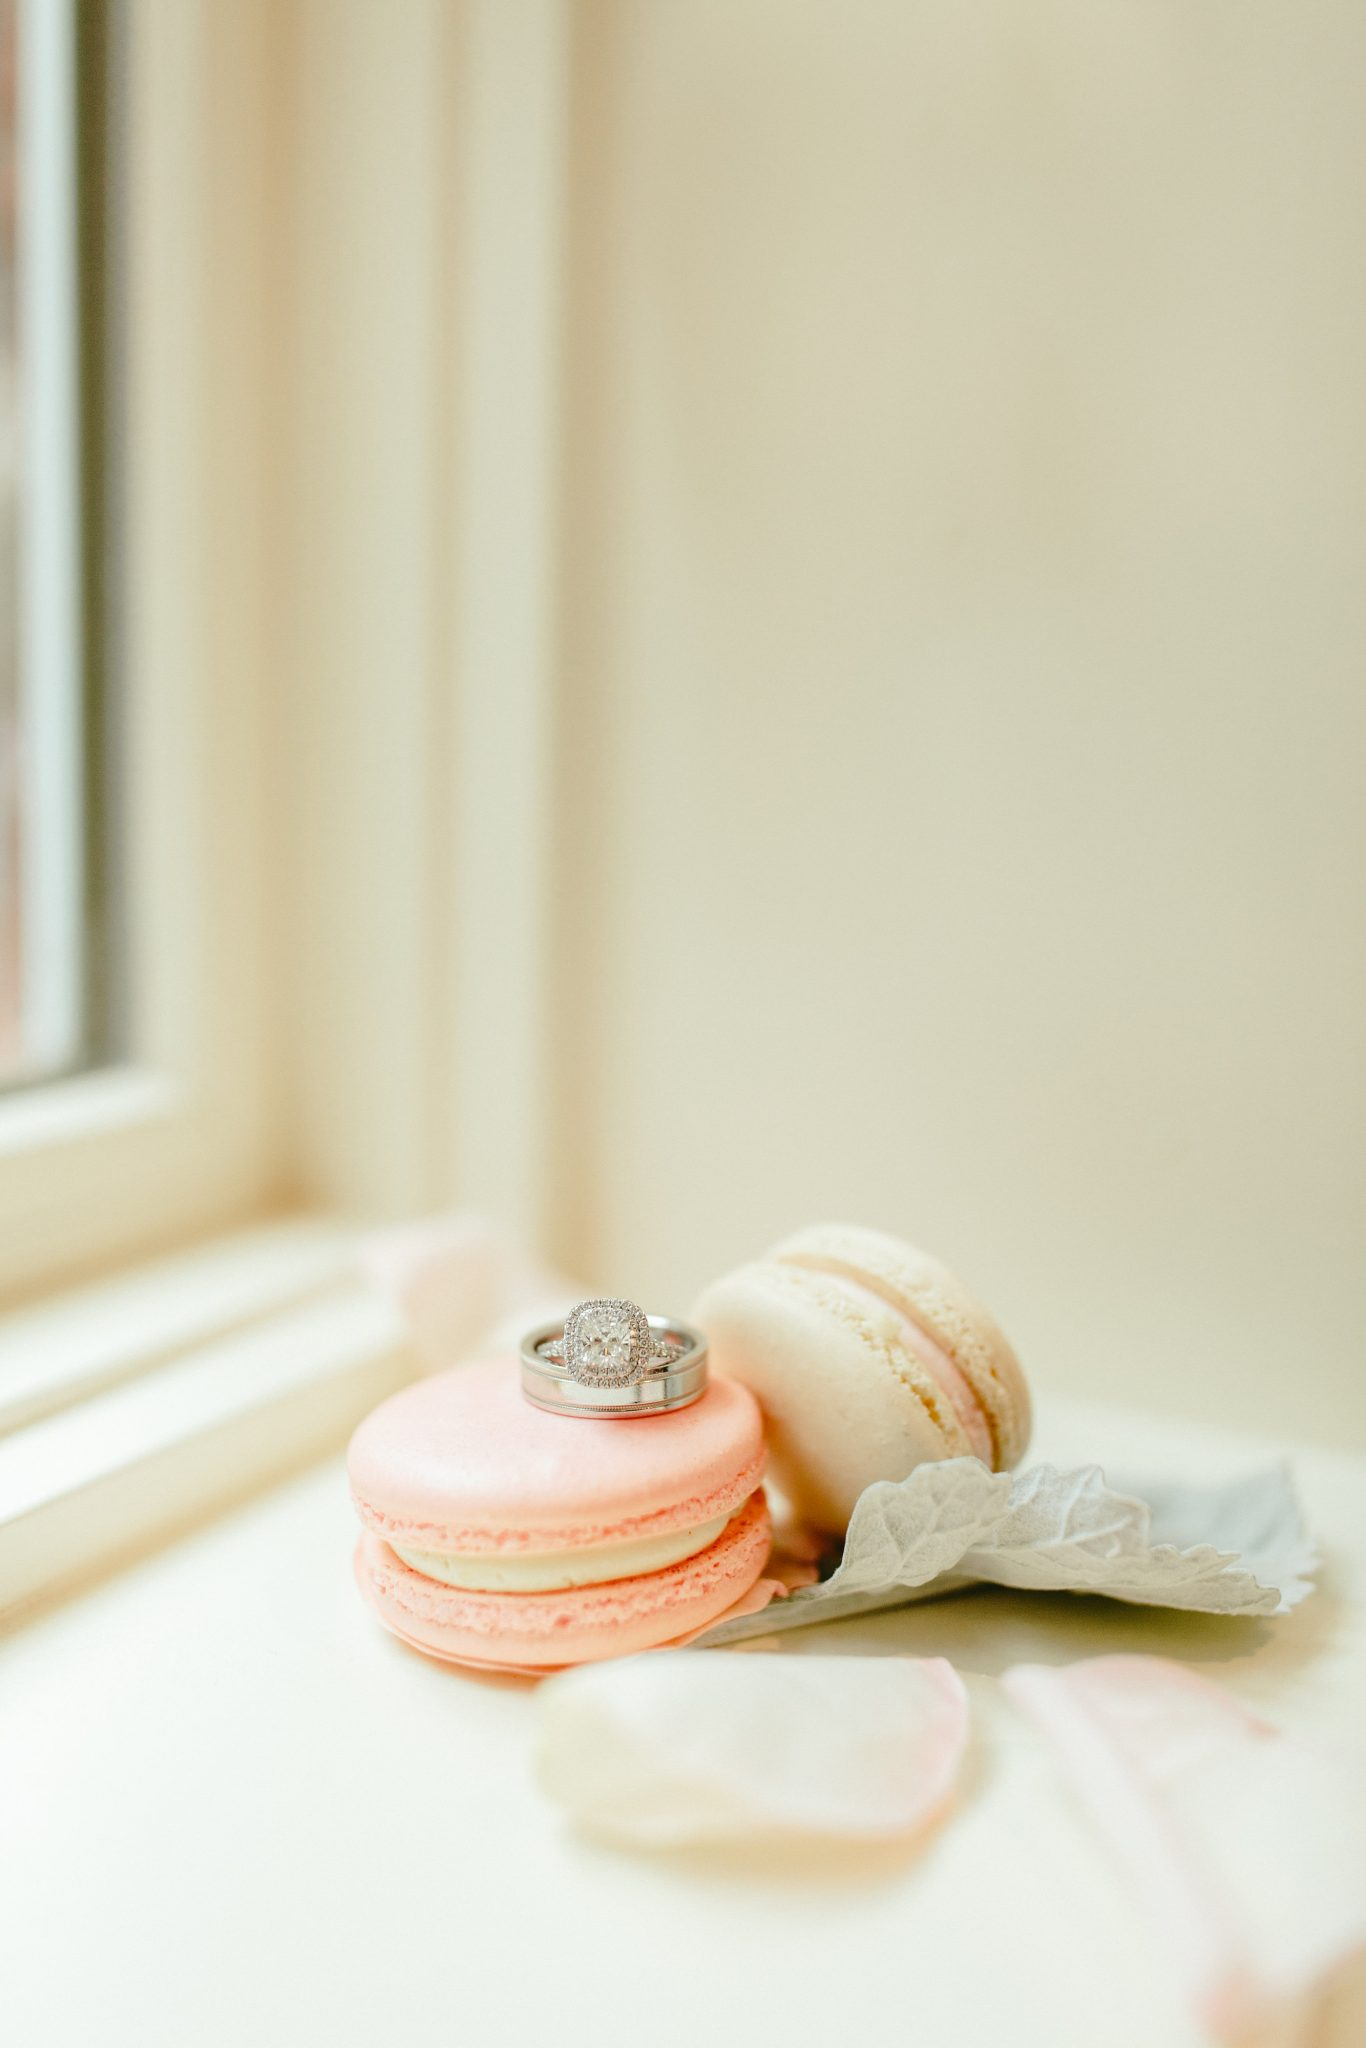 blush wedding colors, blush wedding accent, wedding macaroons, Brooklyn wedding photography, Brooklyn wedding, Philadelphia wedding photographer, Philadelphia wedding, Brooklyn new york photographer, unique wedding inspiration, fun wedding photos, romantic wedding, destination wedding photographer